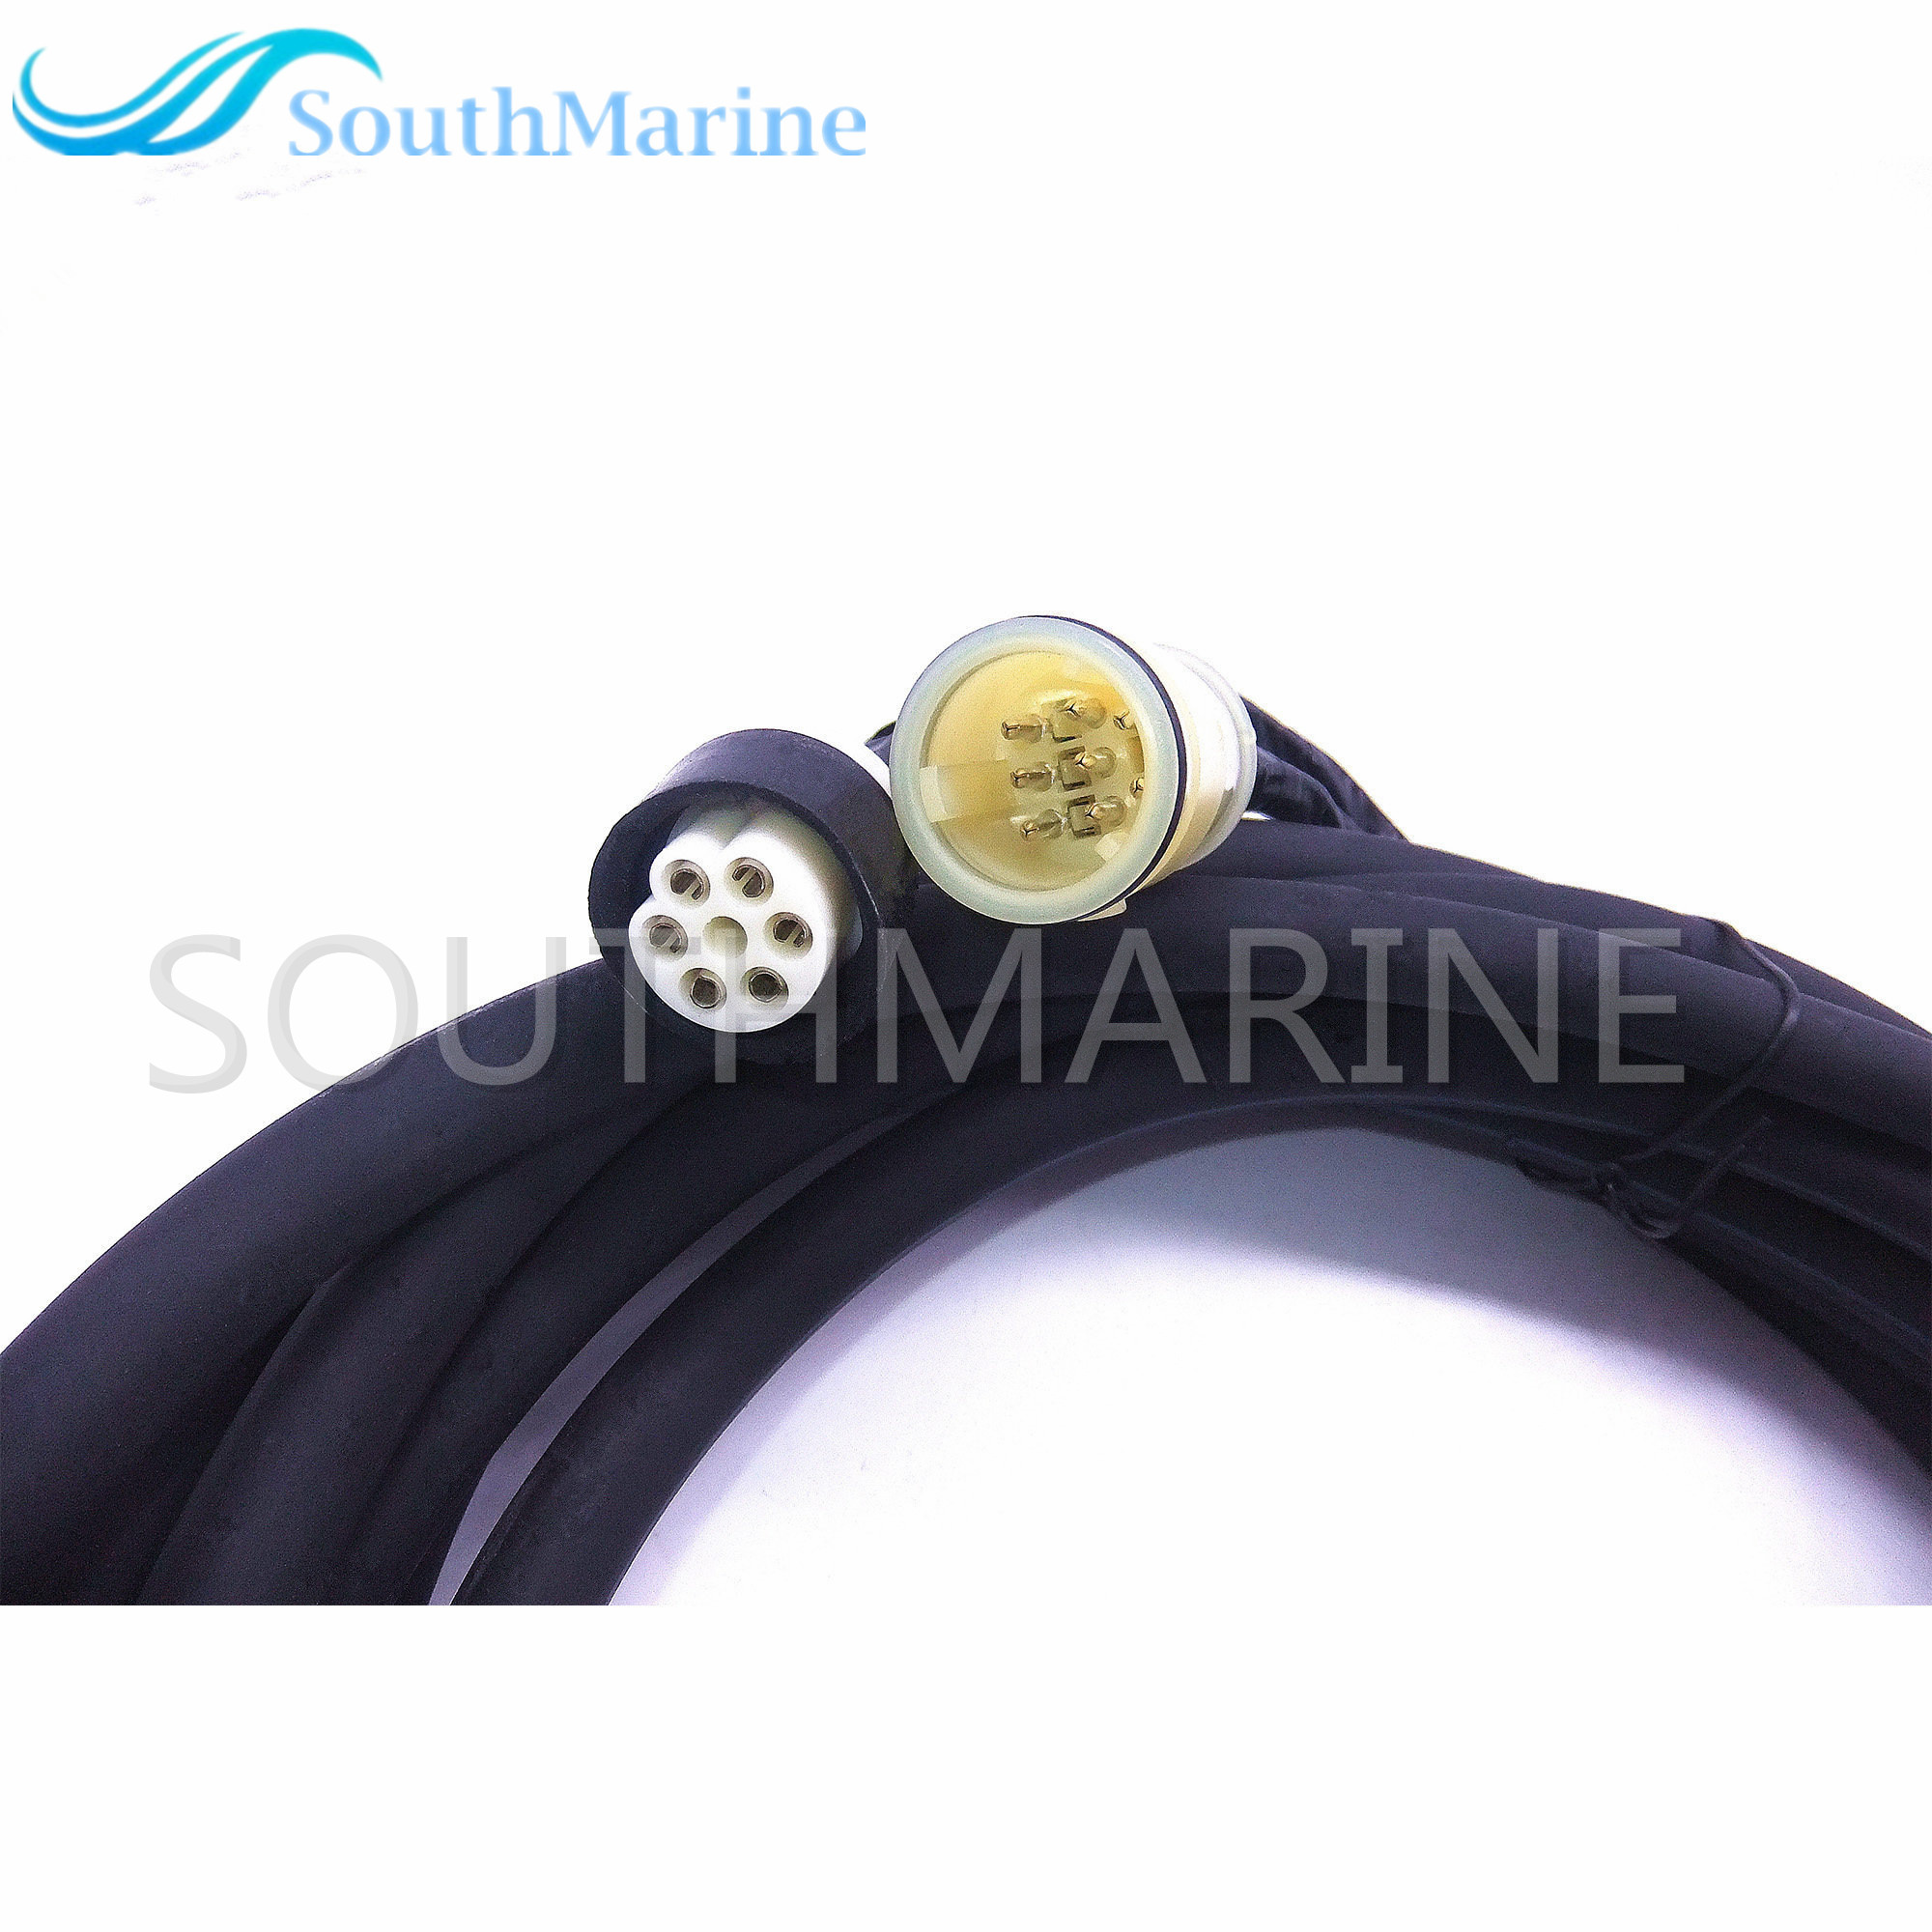 US $142.66 11% OFF|61A 8258A 00 6K1 8258A 40 26FT Main Wiring Harness on